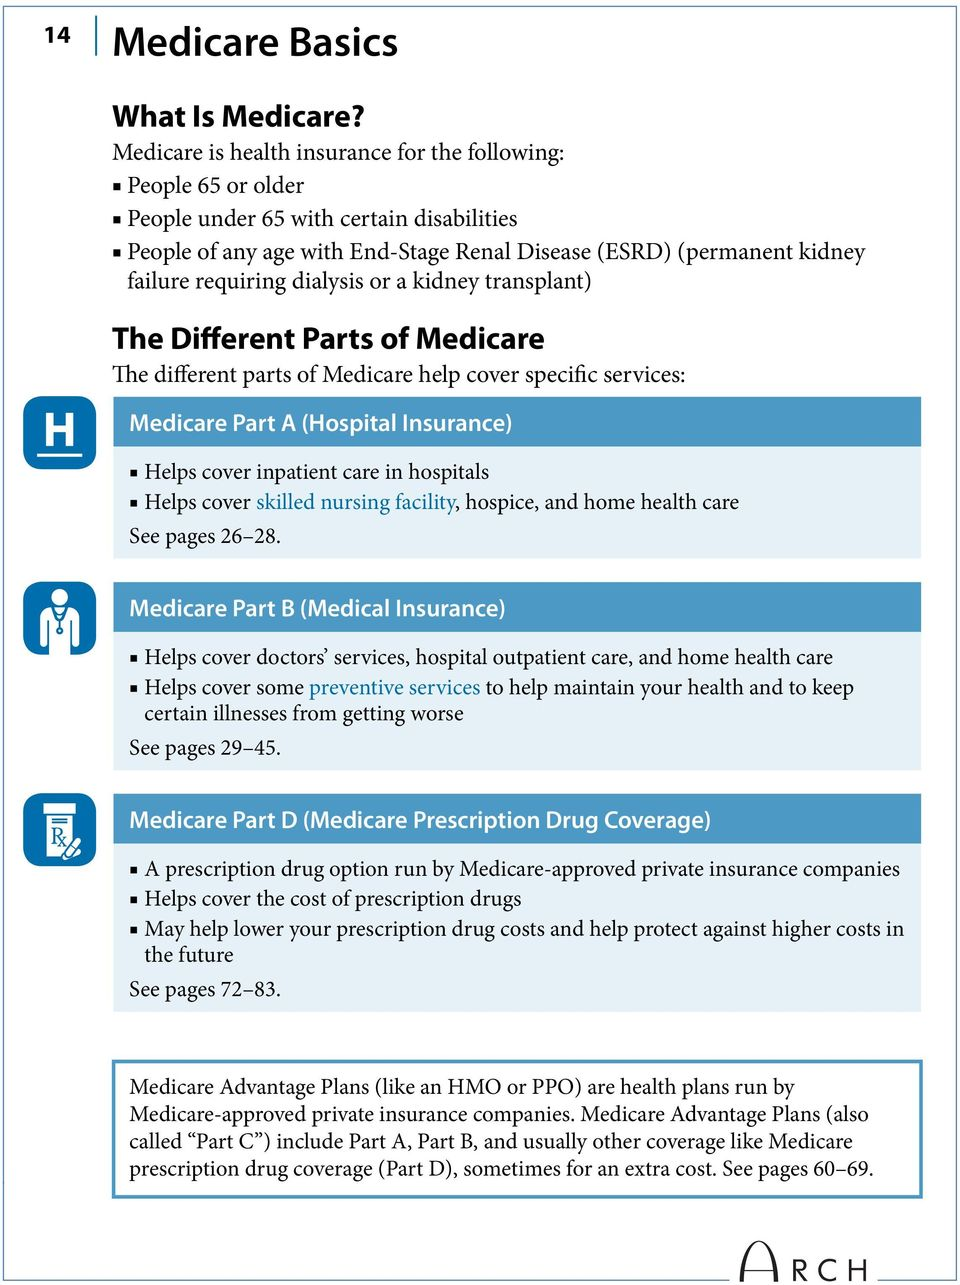 dialysis or a kidney transplant) The Different Parts of Medicare The different parts of Medicare help cover specific services: Medicare Part A (Hospital Insurance) Helps cover inpatient care in